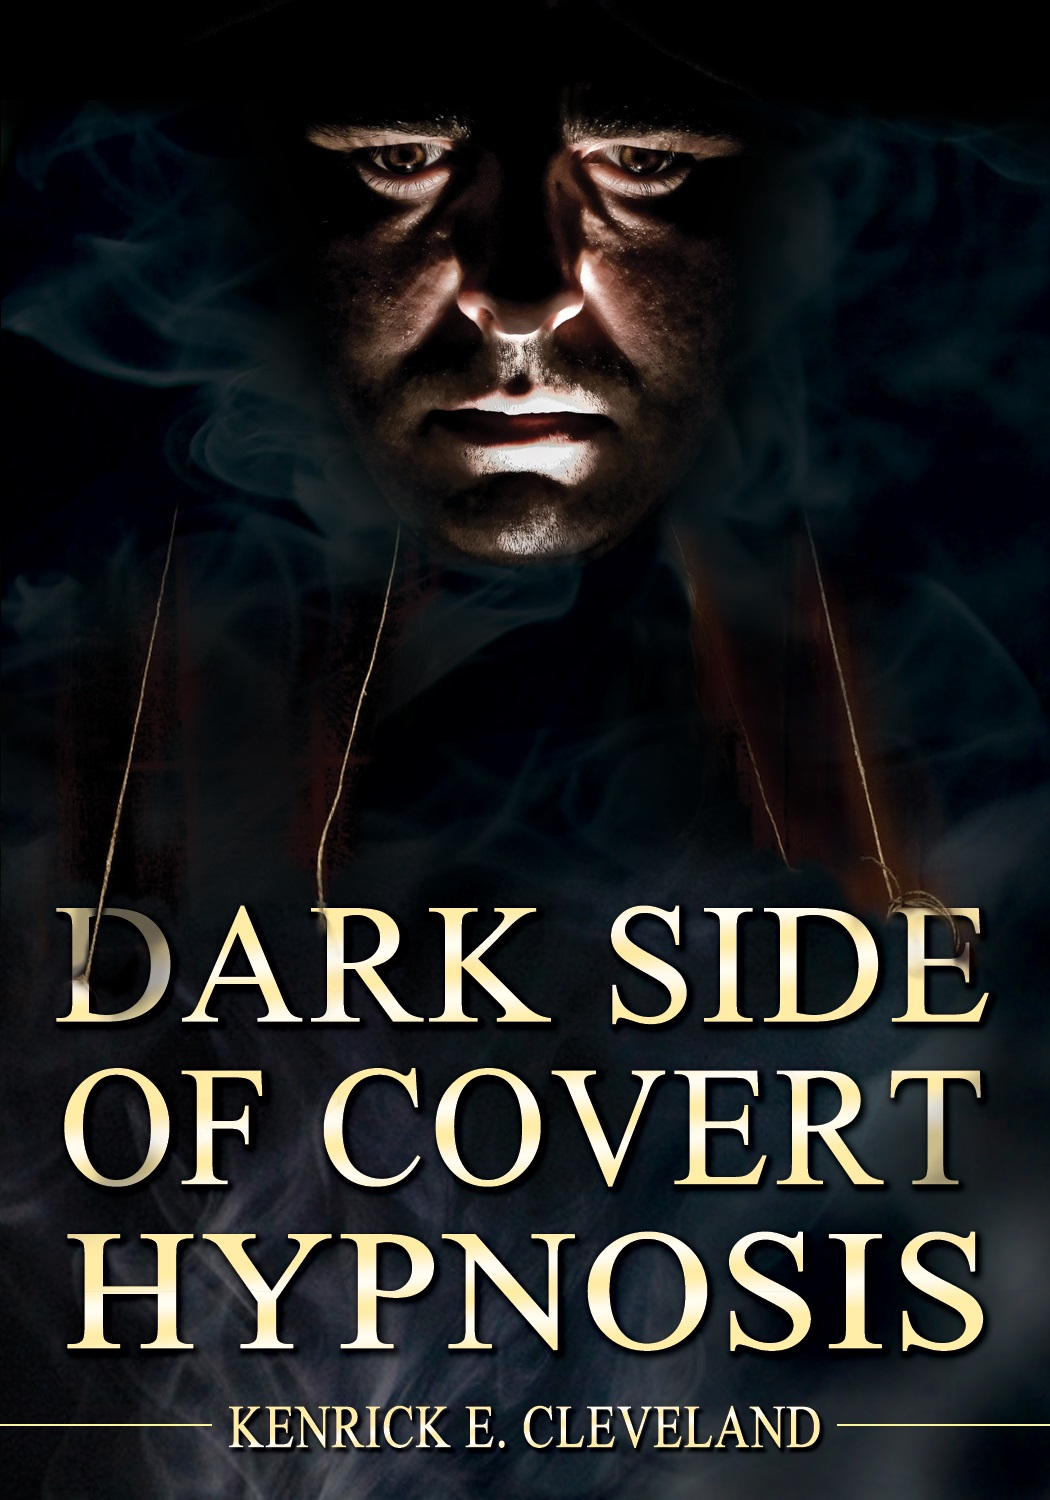 Kenrick Cleveland - The Dark Side of Covert Hypnosis